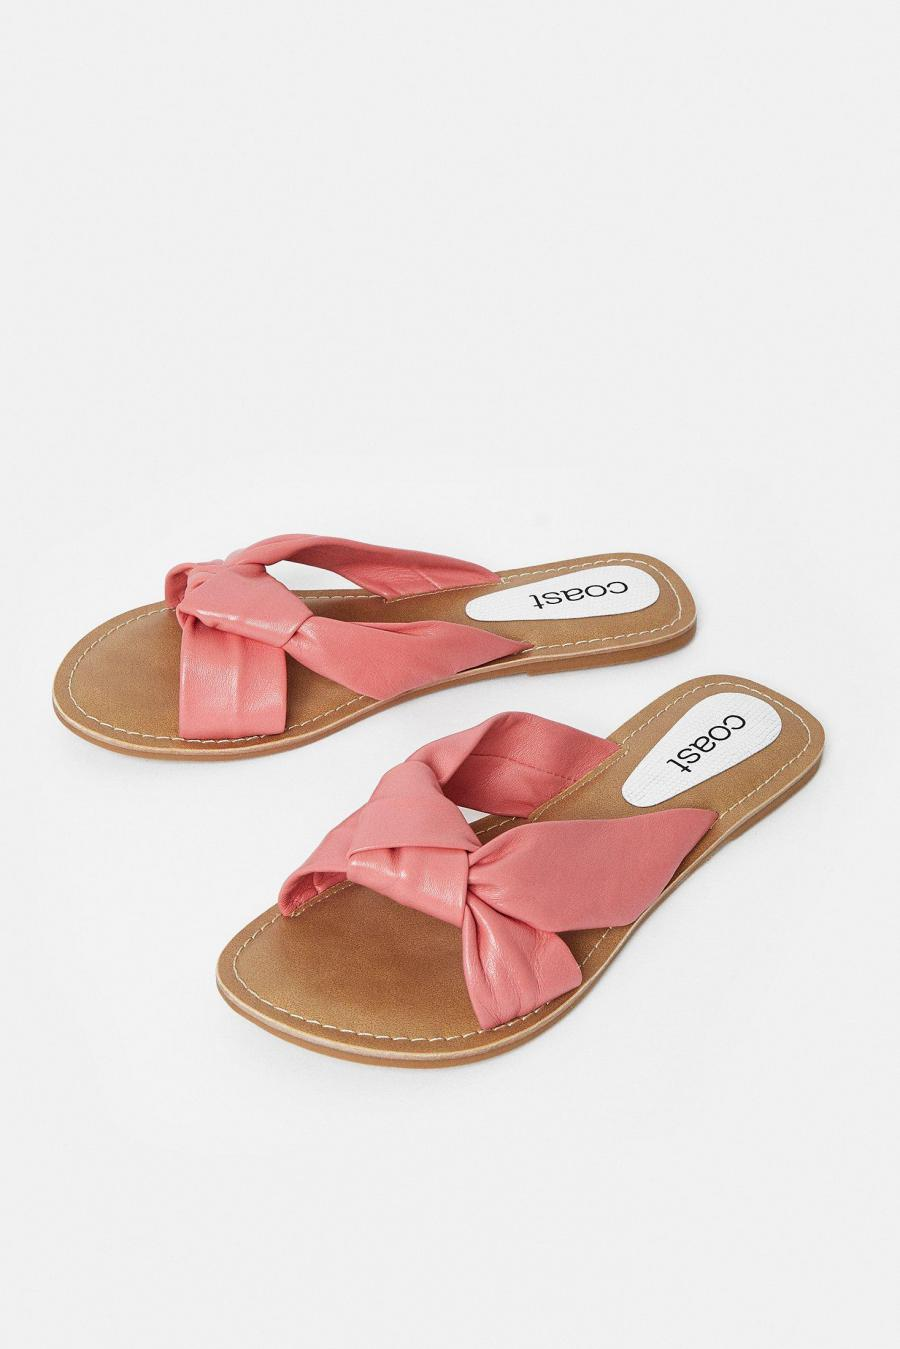 Coast Sandals   Womens Knot Front Flat Sandal Coral